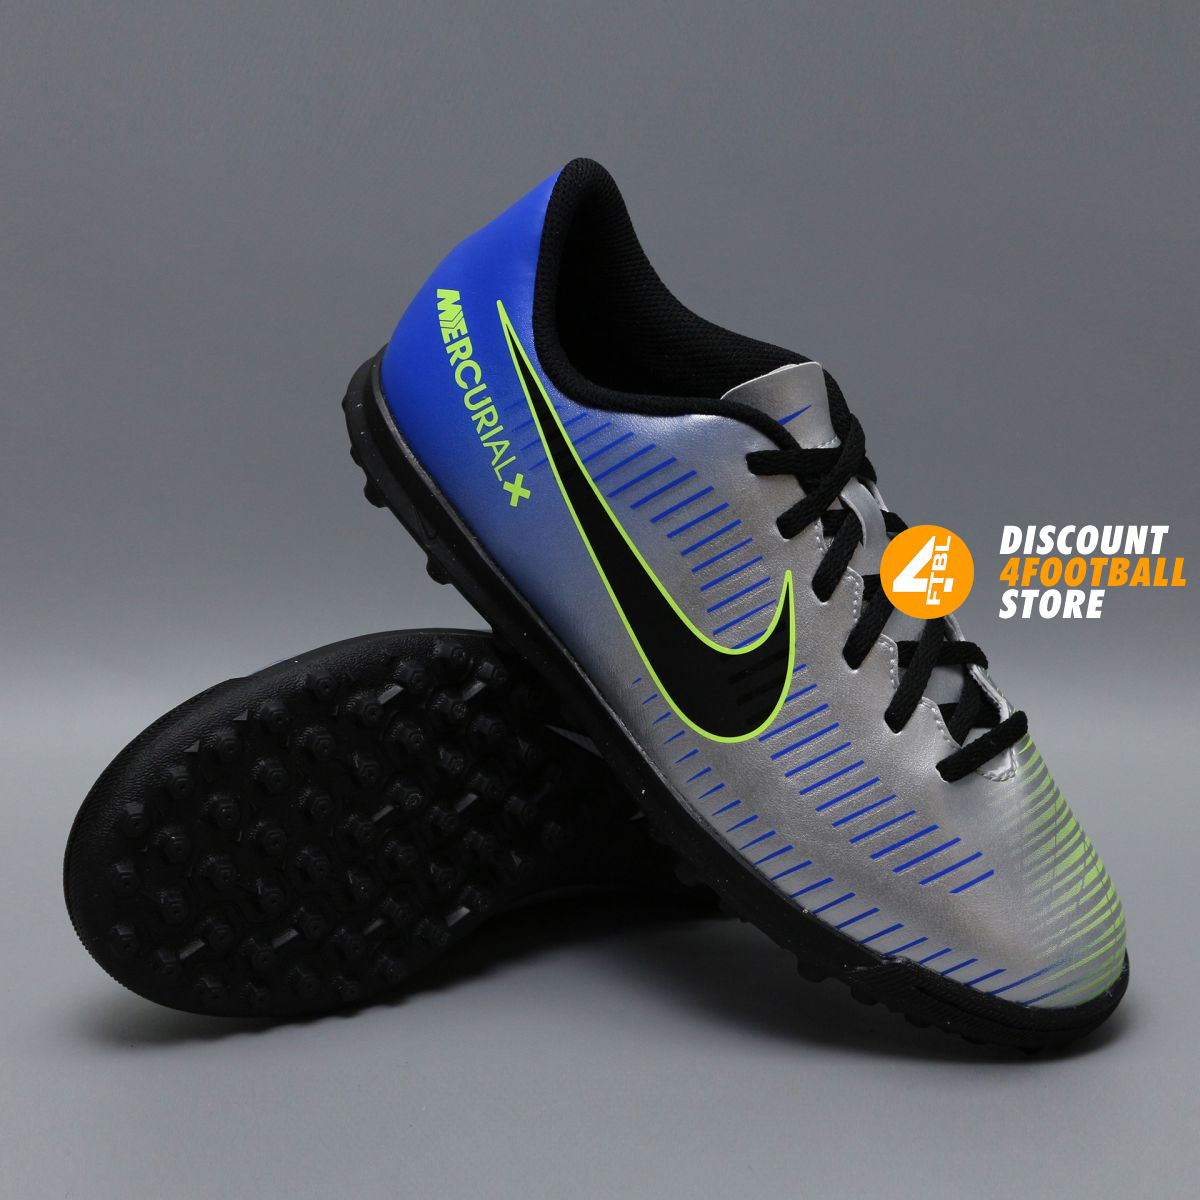 7954dfdc572a Детские сороконожки Nike Mercurial Vortex NEYMAR-R9 921497-407 Chrome Blue  ...